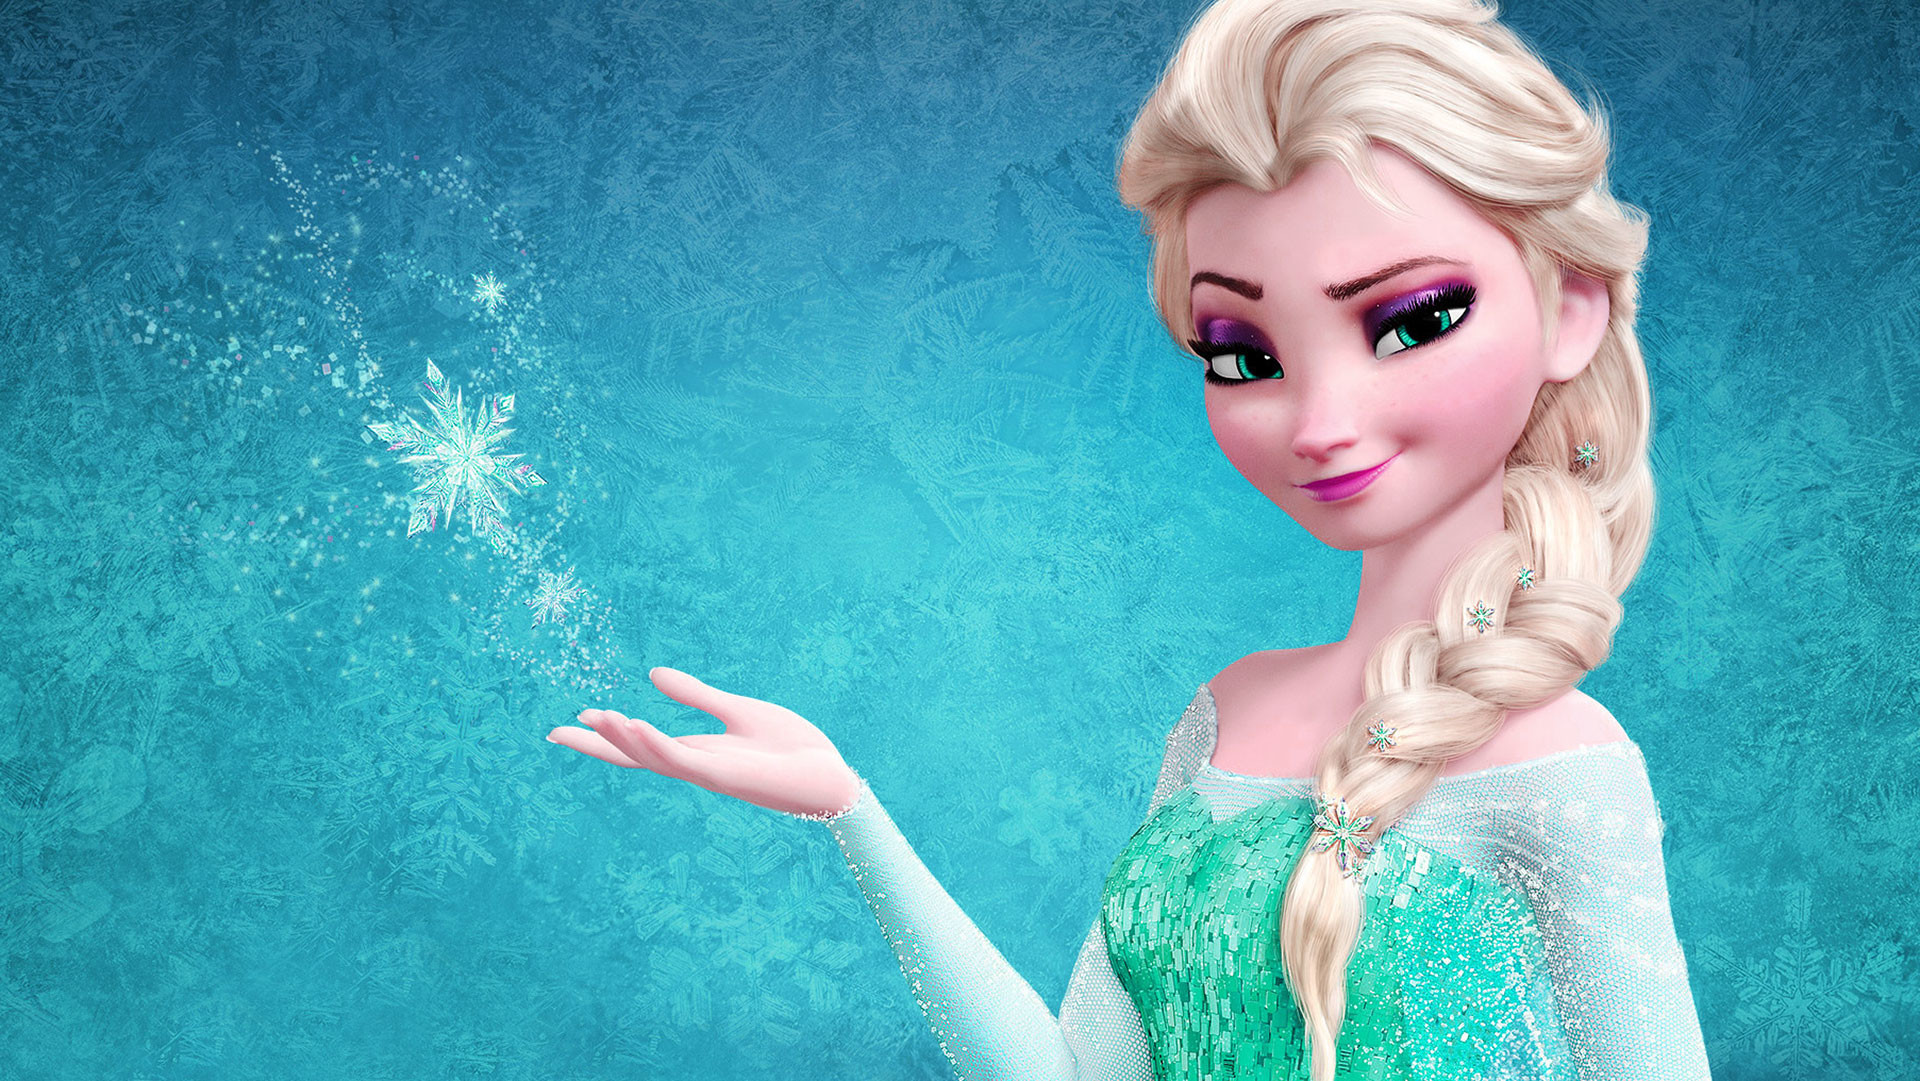 Cute Anchor Wallpapers Barbie Wallpapers 183 ①